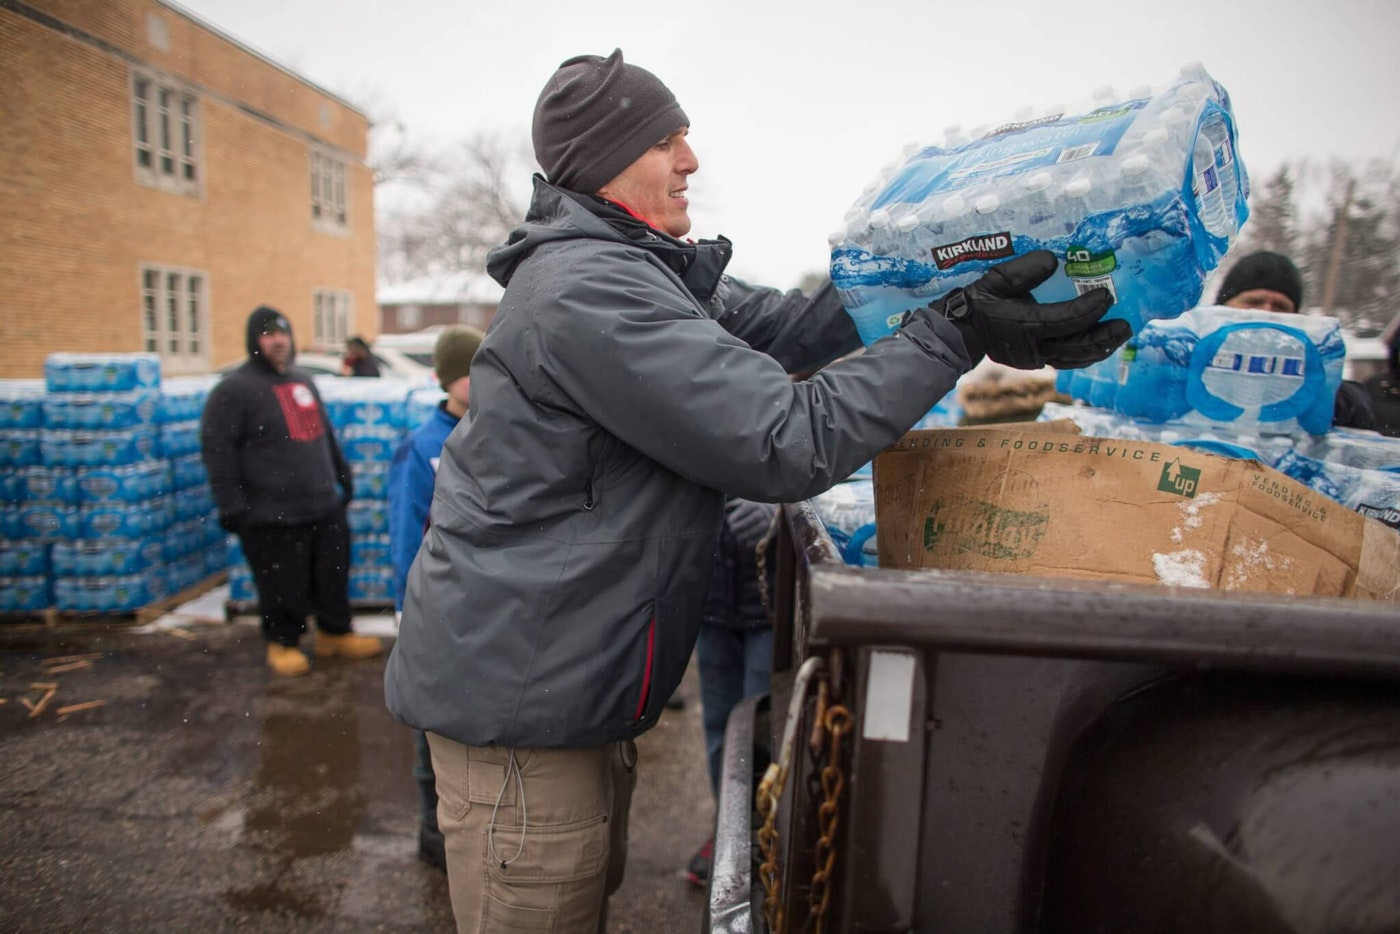 Volunteers load cases of free water into waiting vehicles at a water distribution centre at Salem Lutheran Church in Flint, Michigan, on March 5, 2016.  Flint changed its water source in April of 2014 from treated water sourced from Lake Huron as well as the Detroit River to the Flint River, but city officials allegedly failed to treat with corrosion control. The failure had a series of problems that culminated with lead contamination from aging pipes.